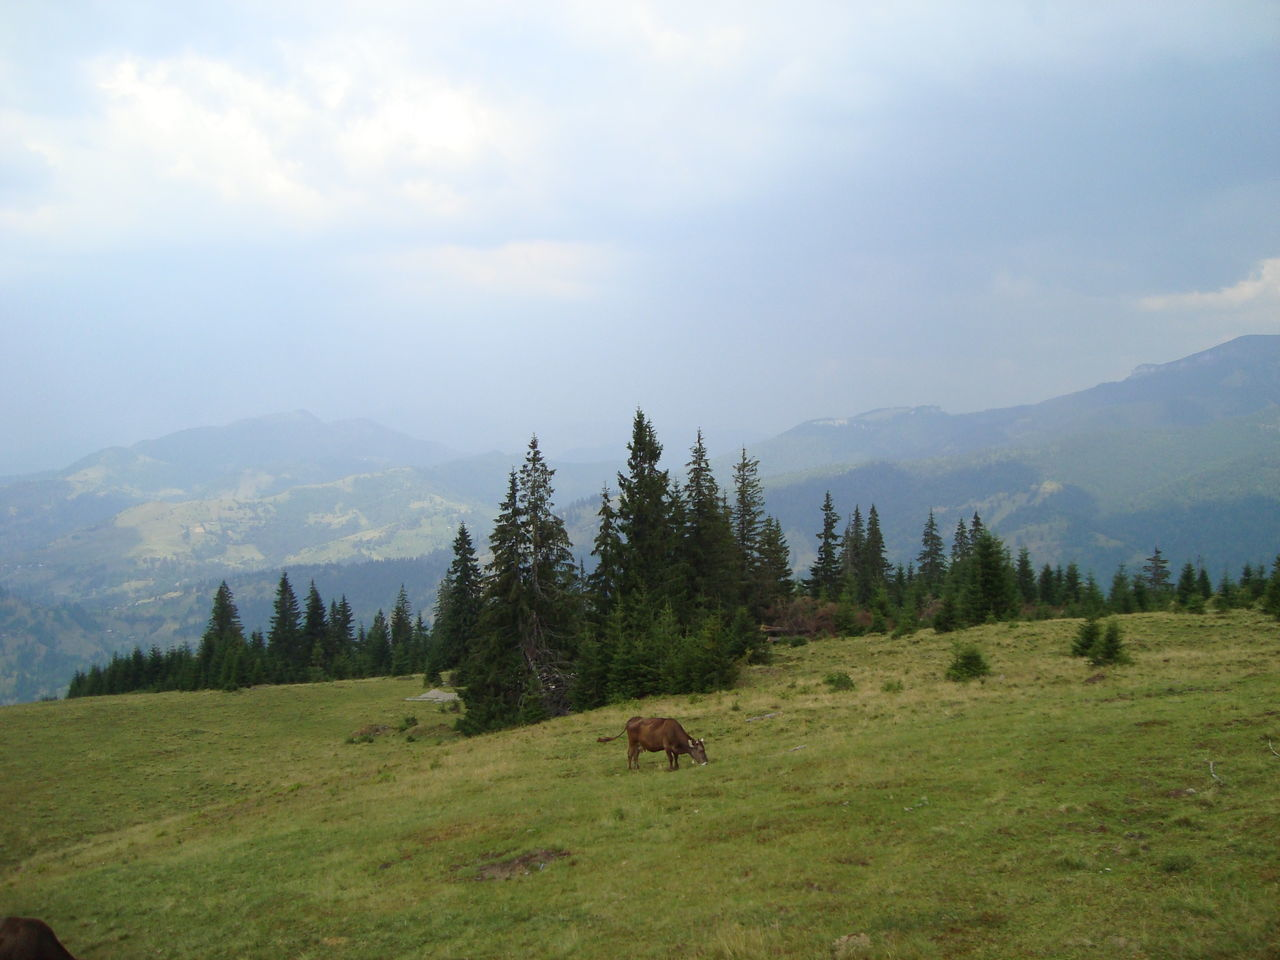 Cow Grazing On Grassy Hill Against Cloudy Sky